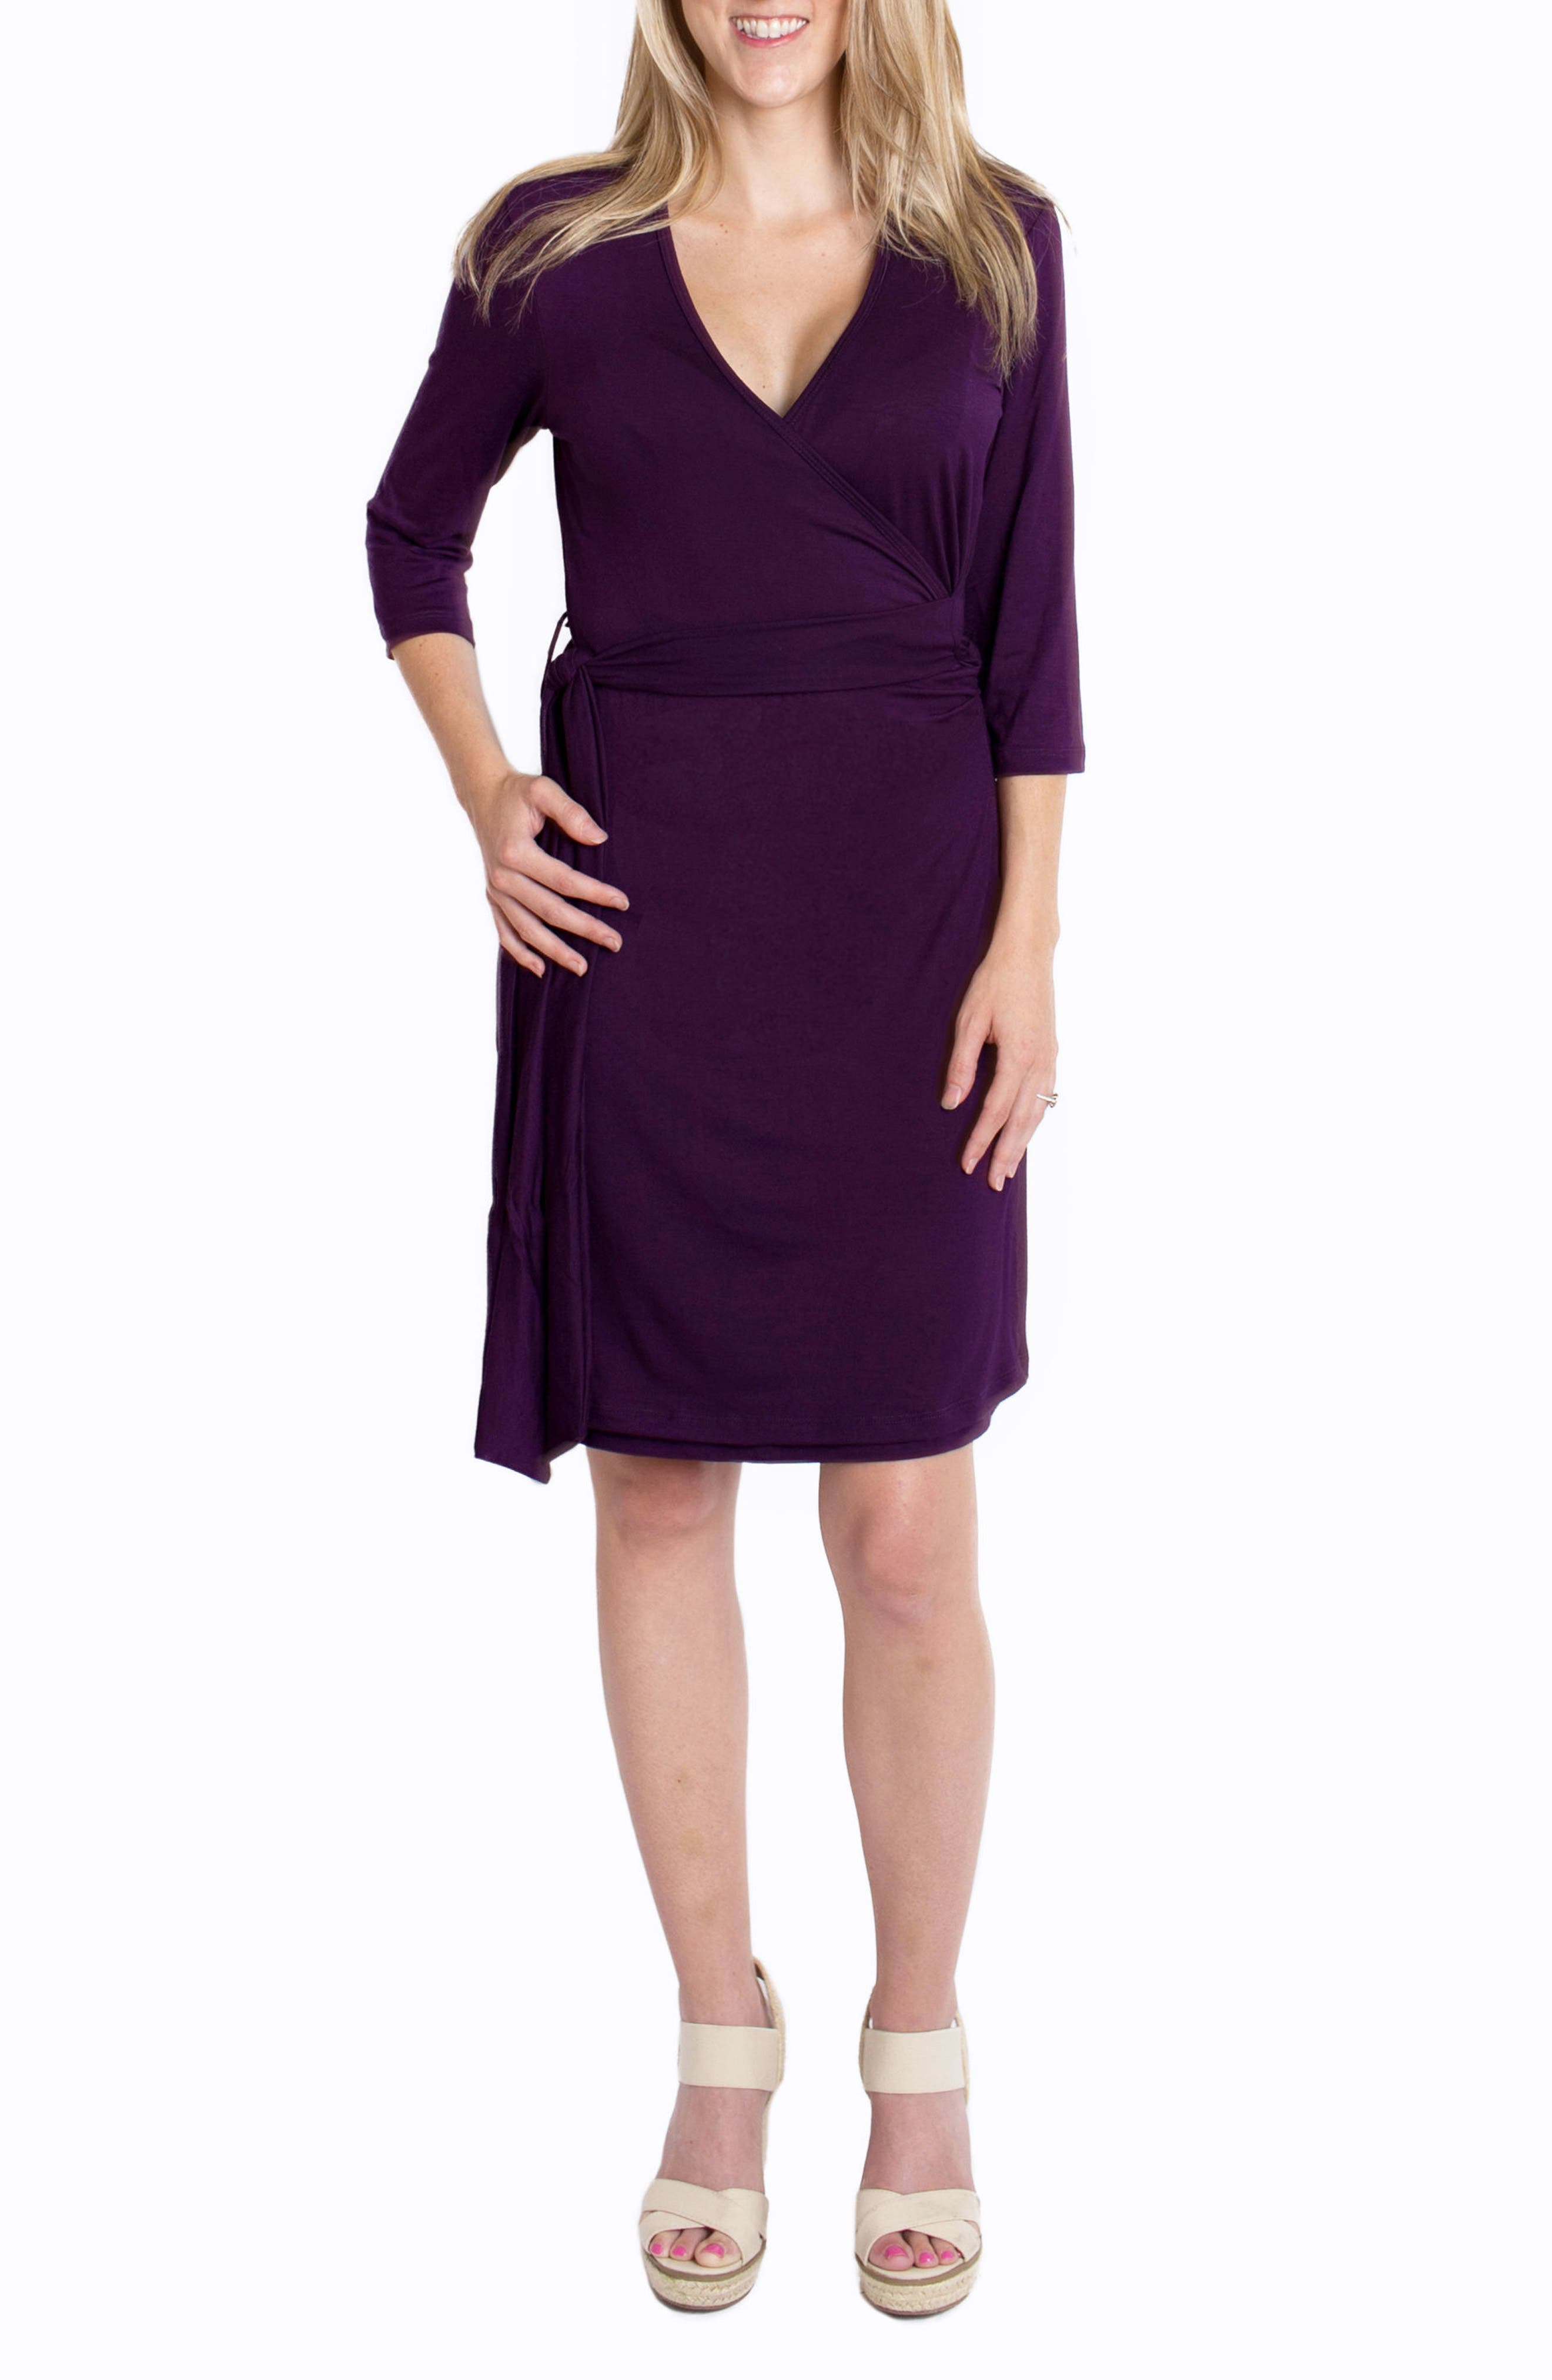 Udderly Hot Mama 'Whimsical' Nursing Wrap Dress